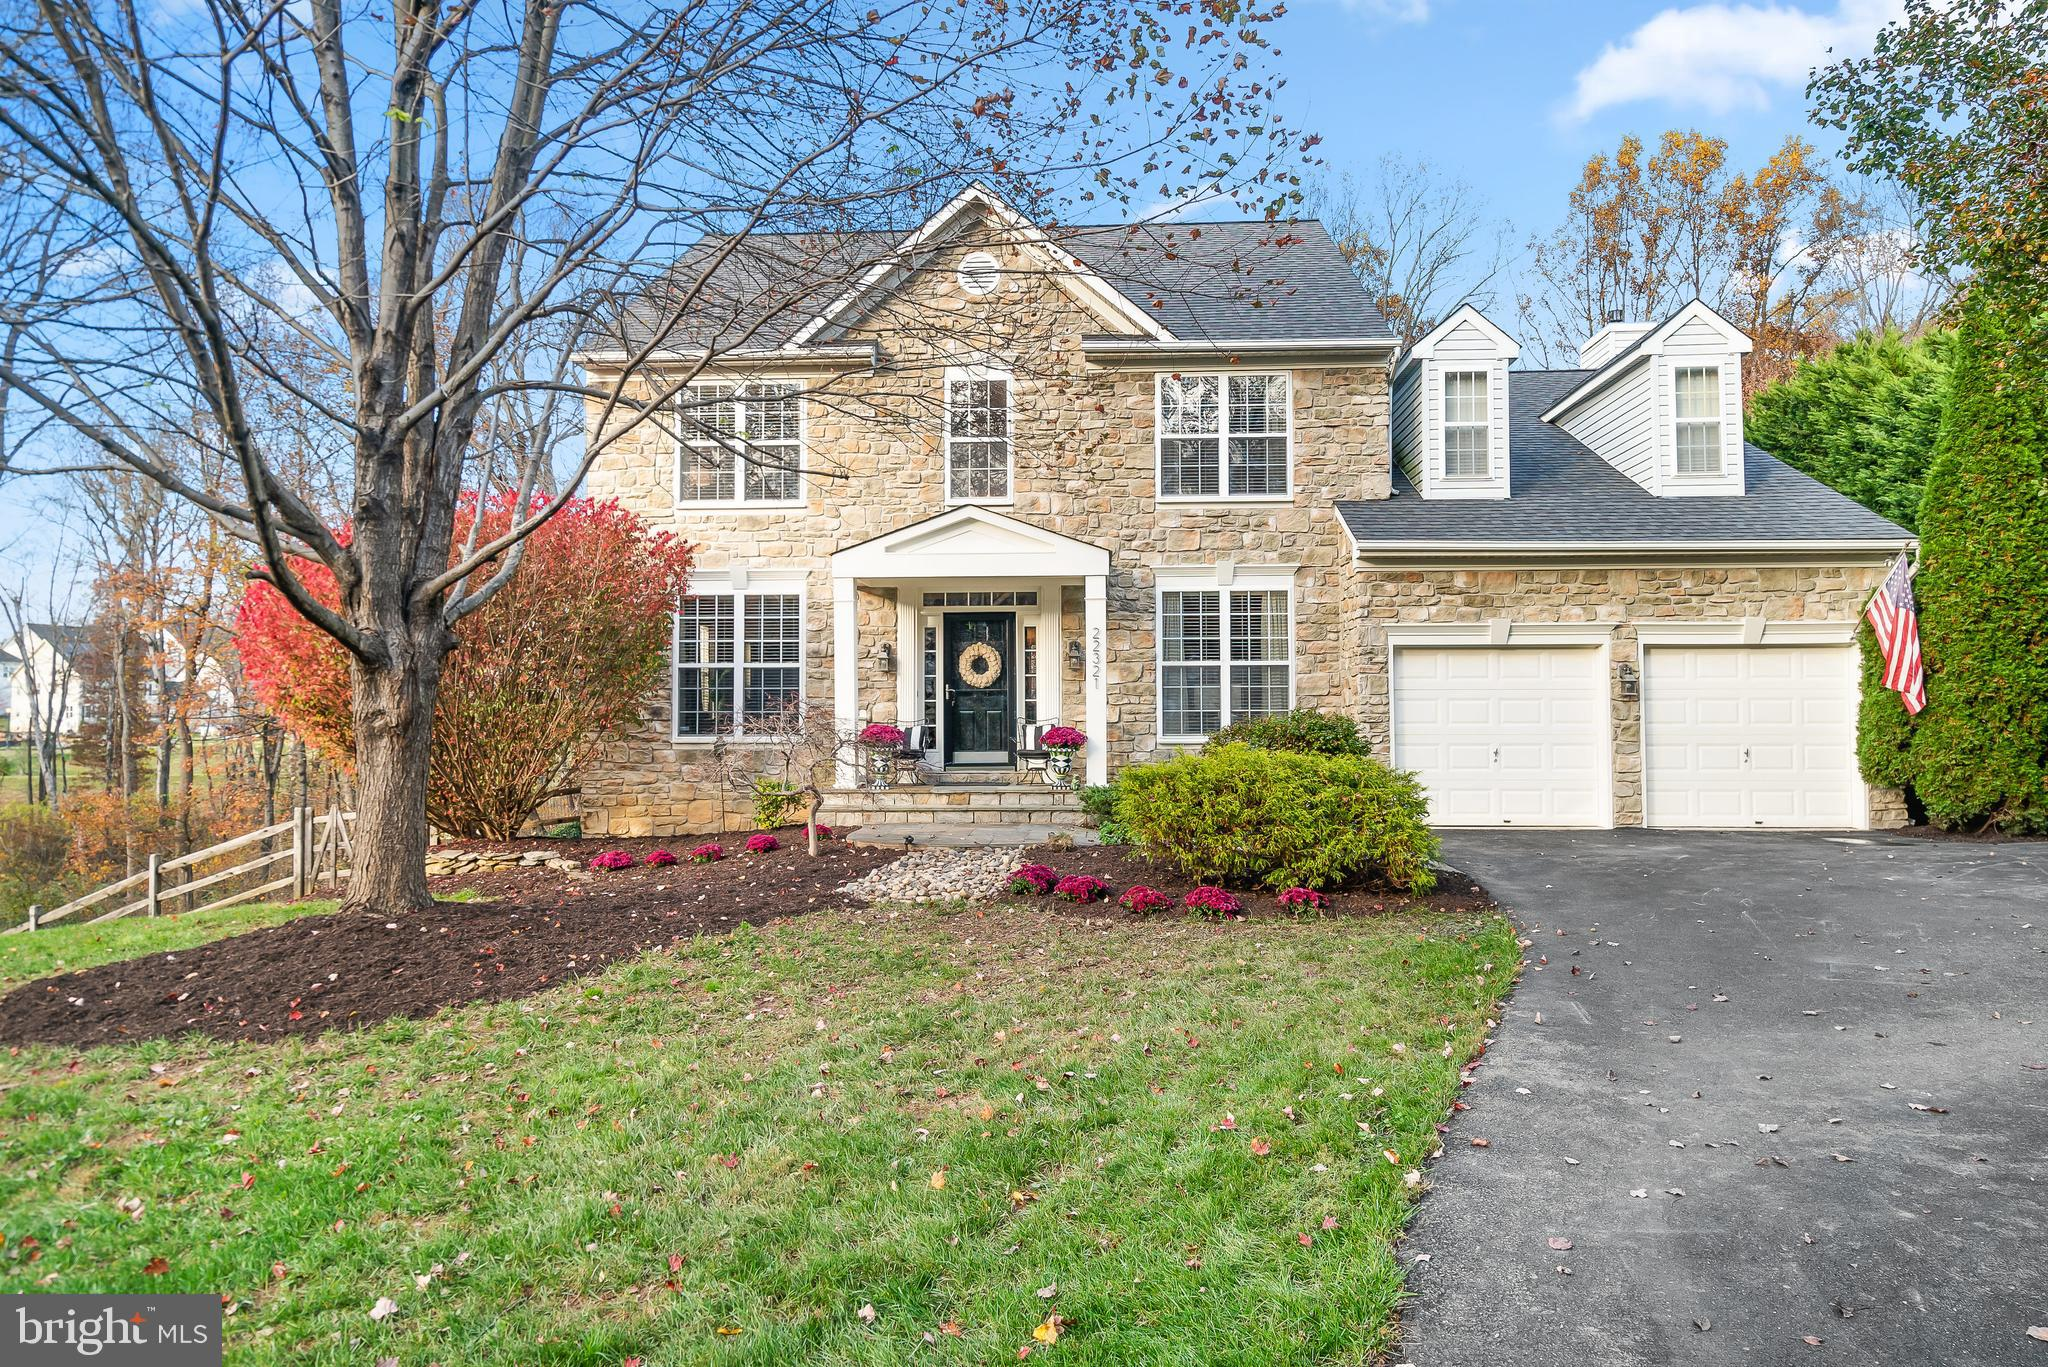 22321 CANTERFIELD WAY, GERMANTOWN, MD 20876